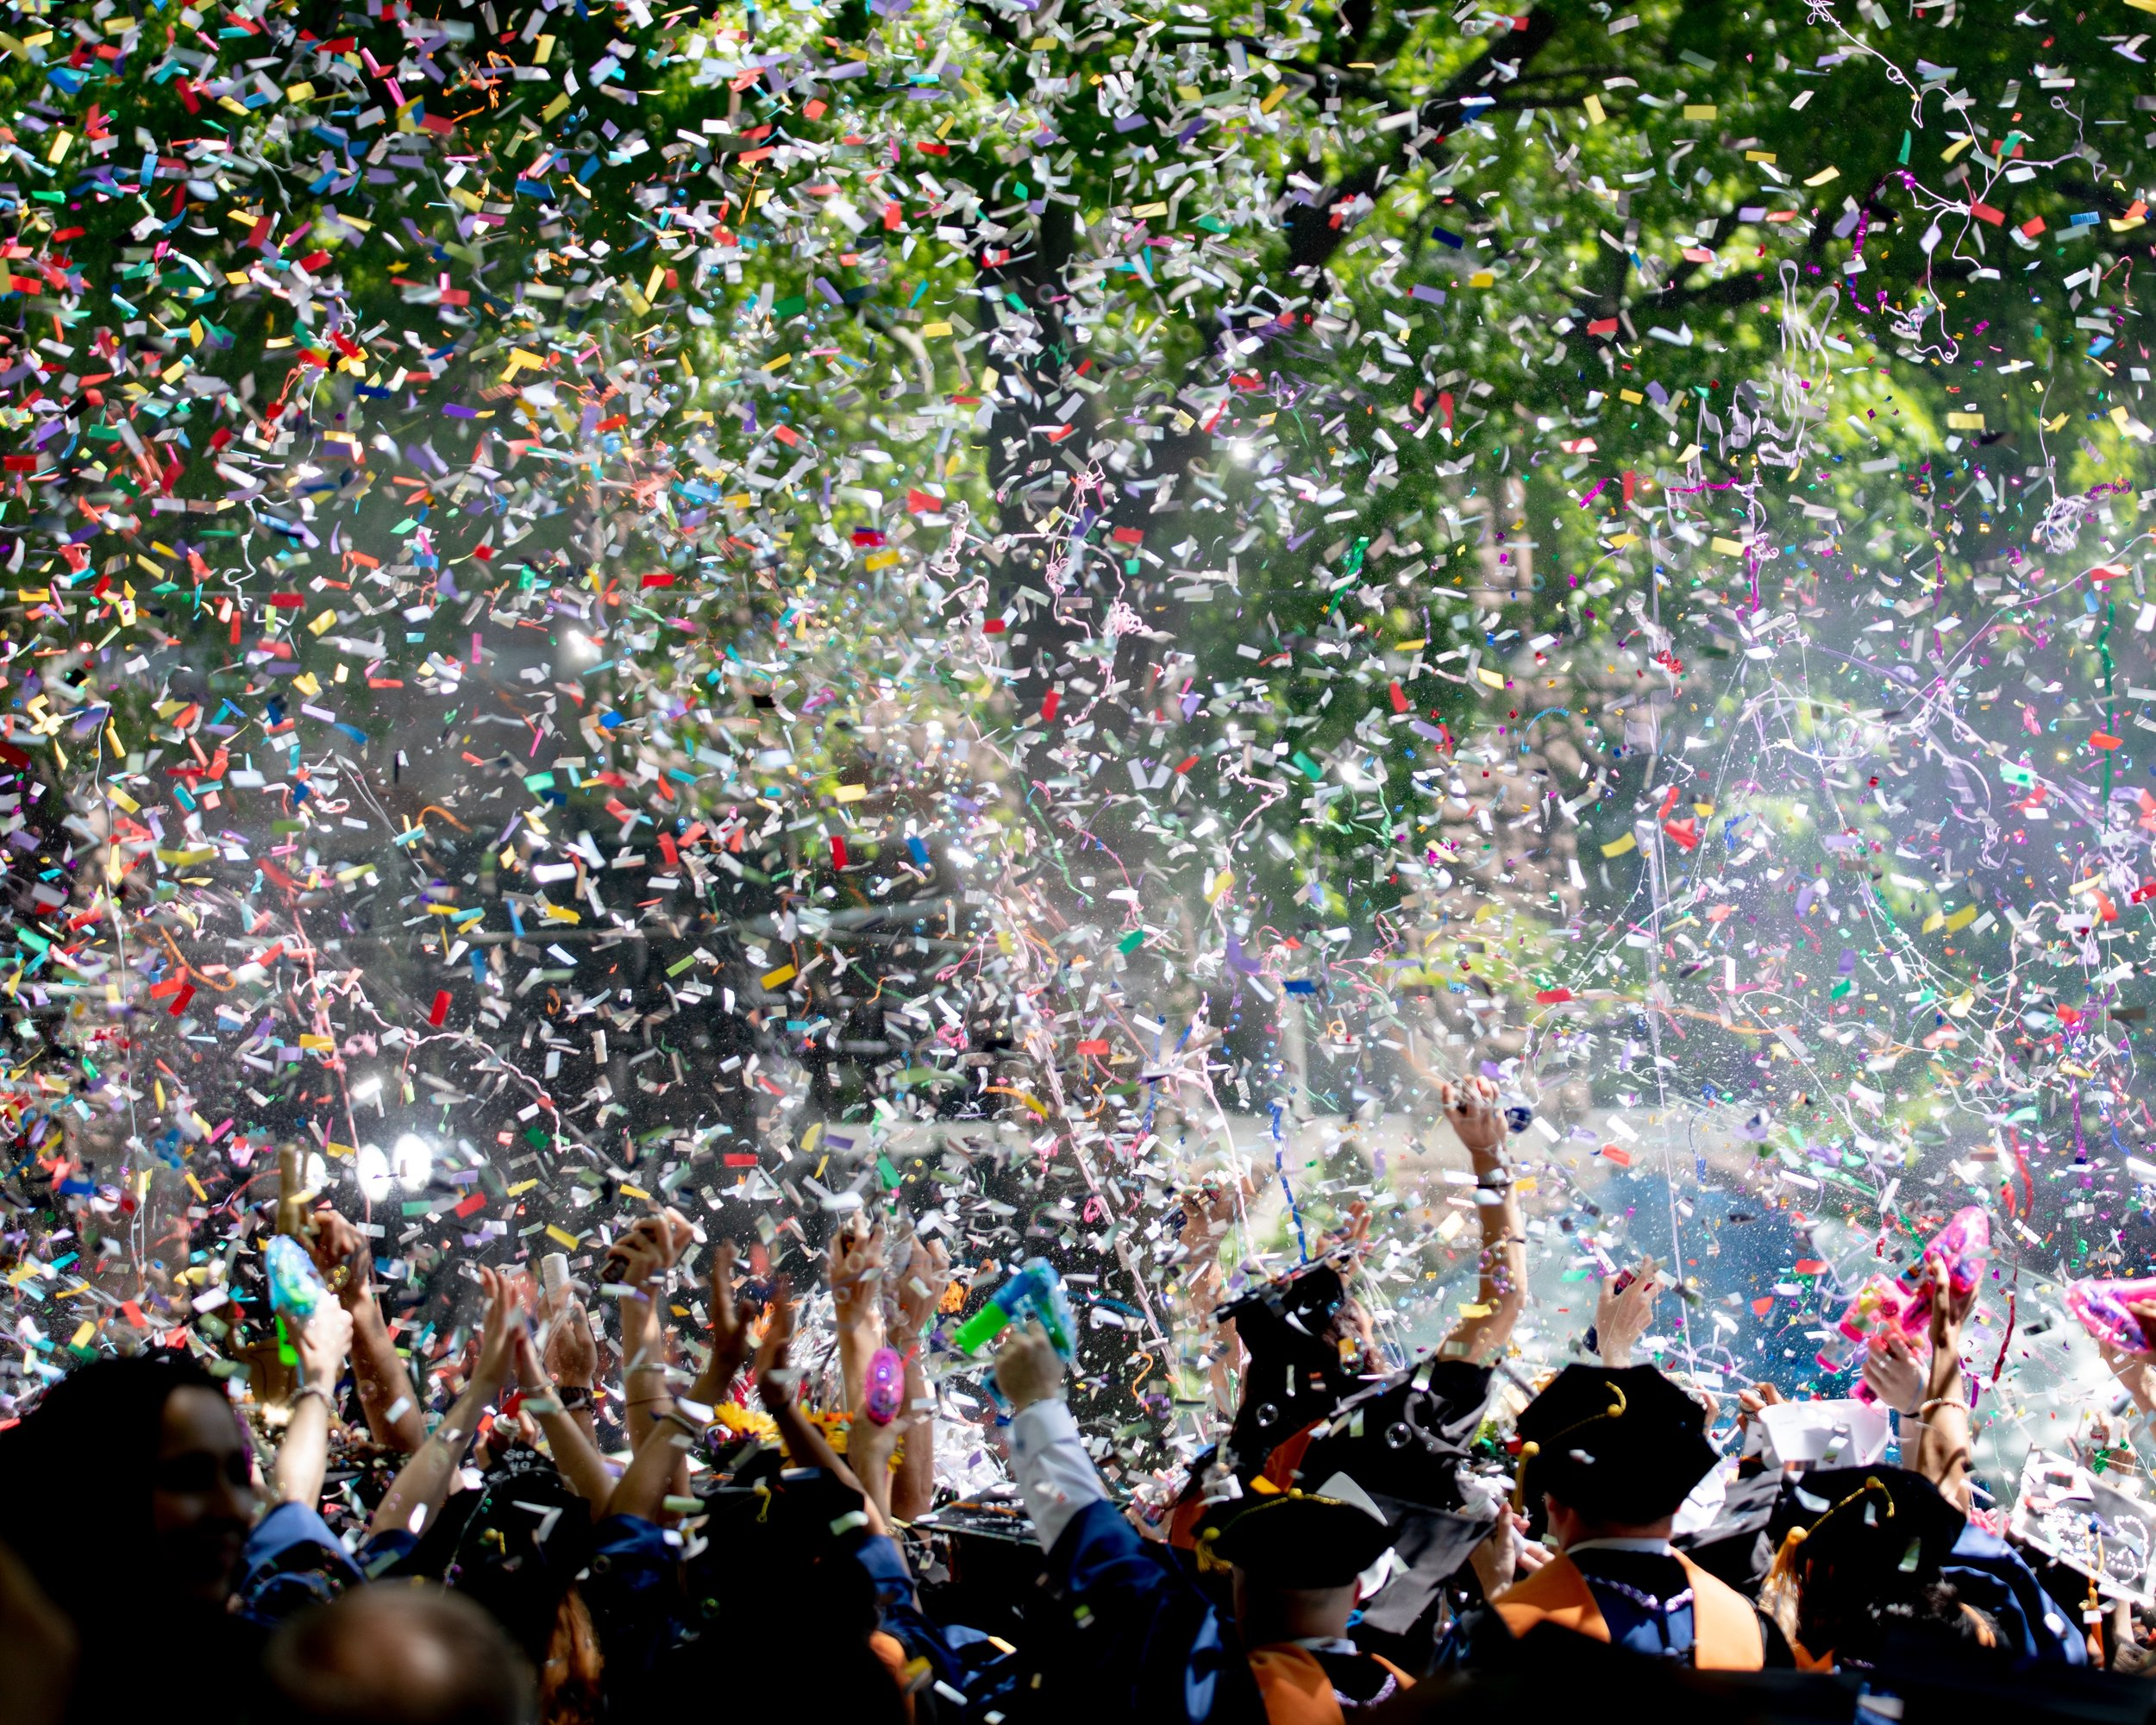 School Events - Nothing says you graduated, won a championship or an award like celebrating in a sea of confetti!